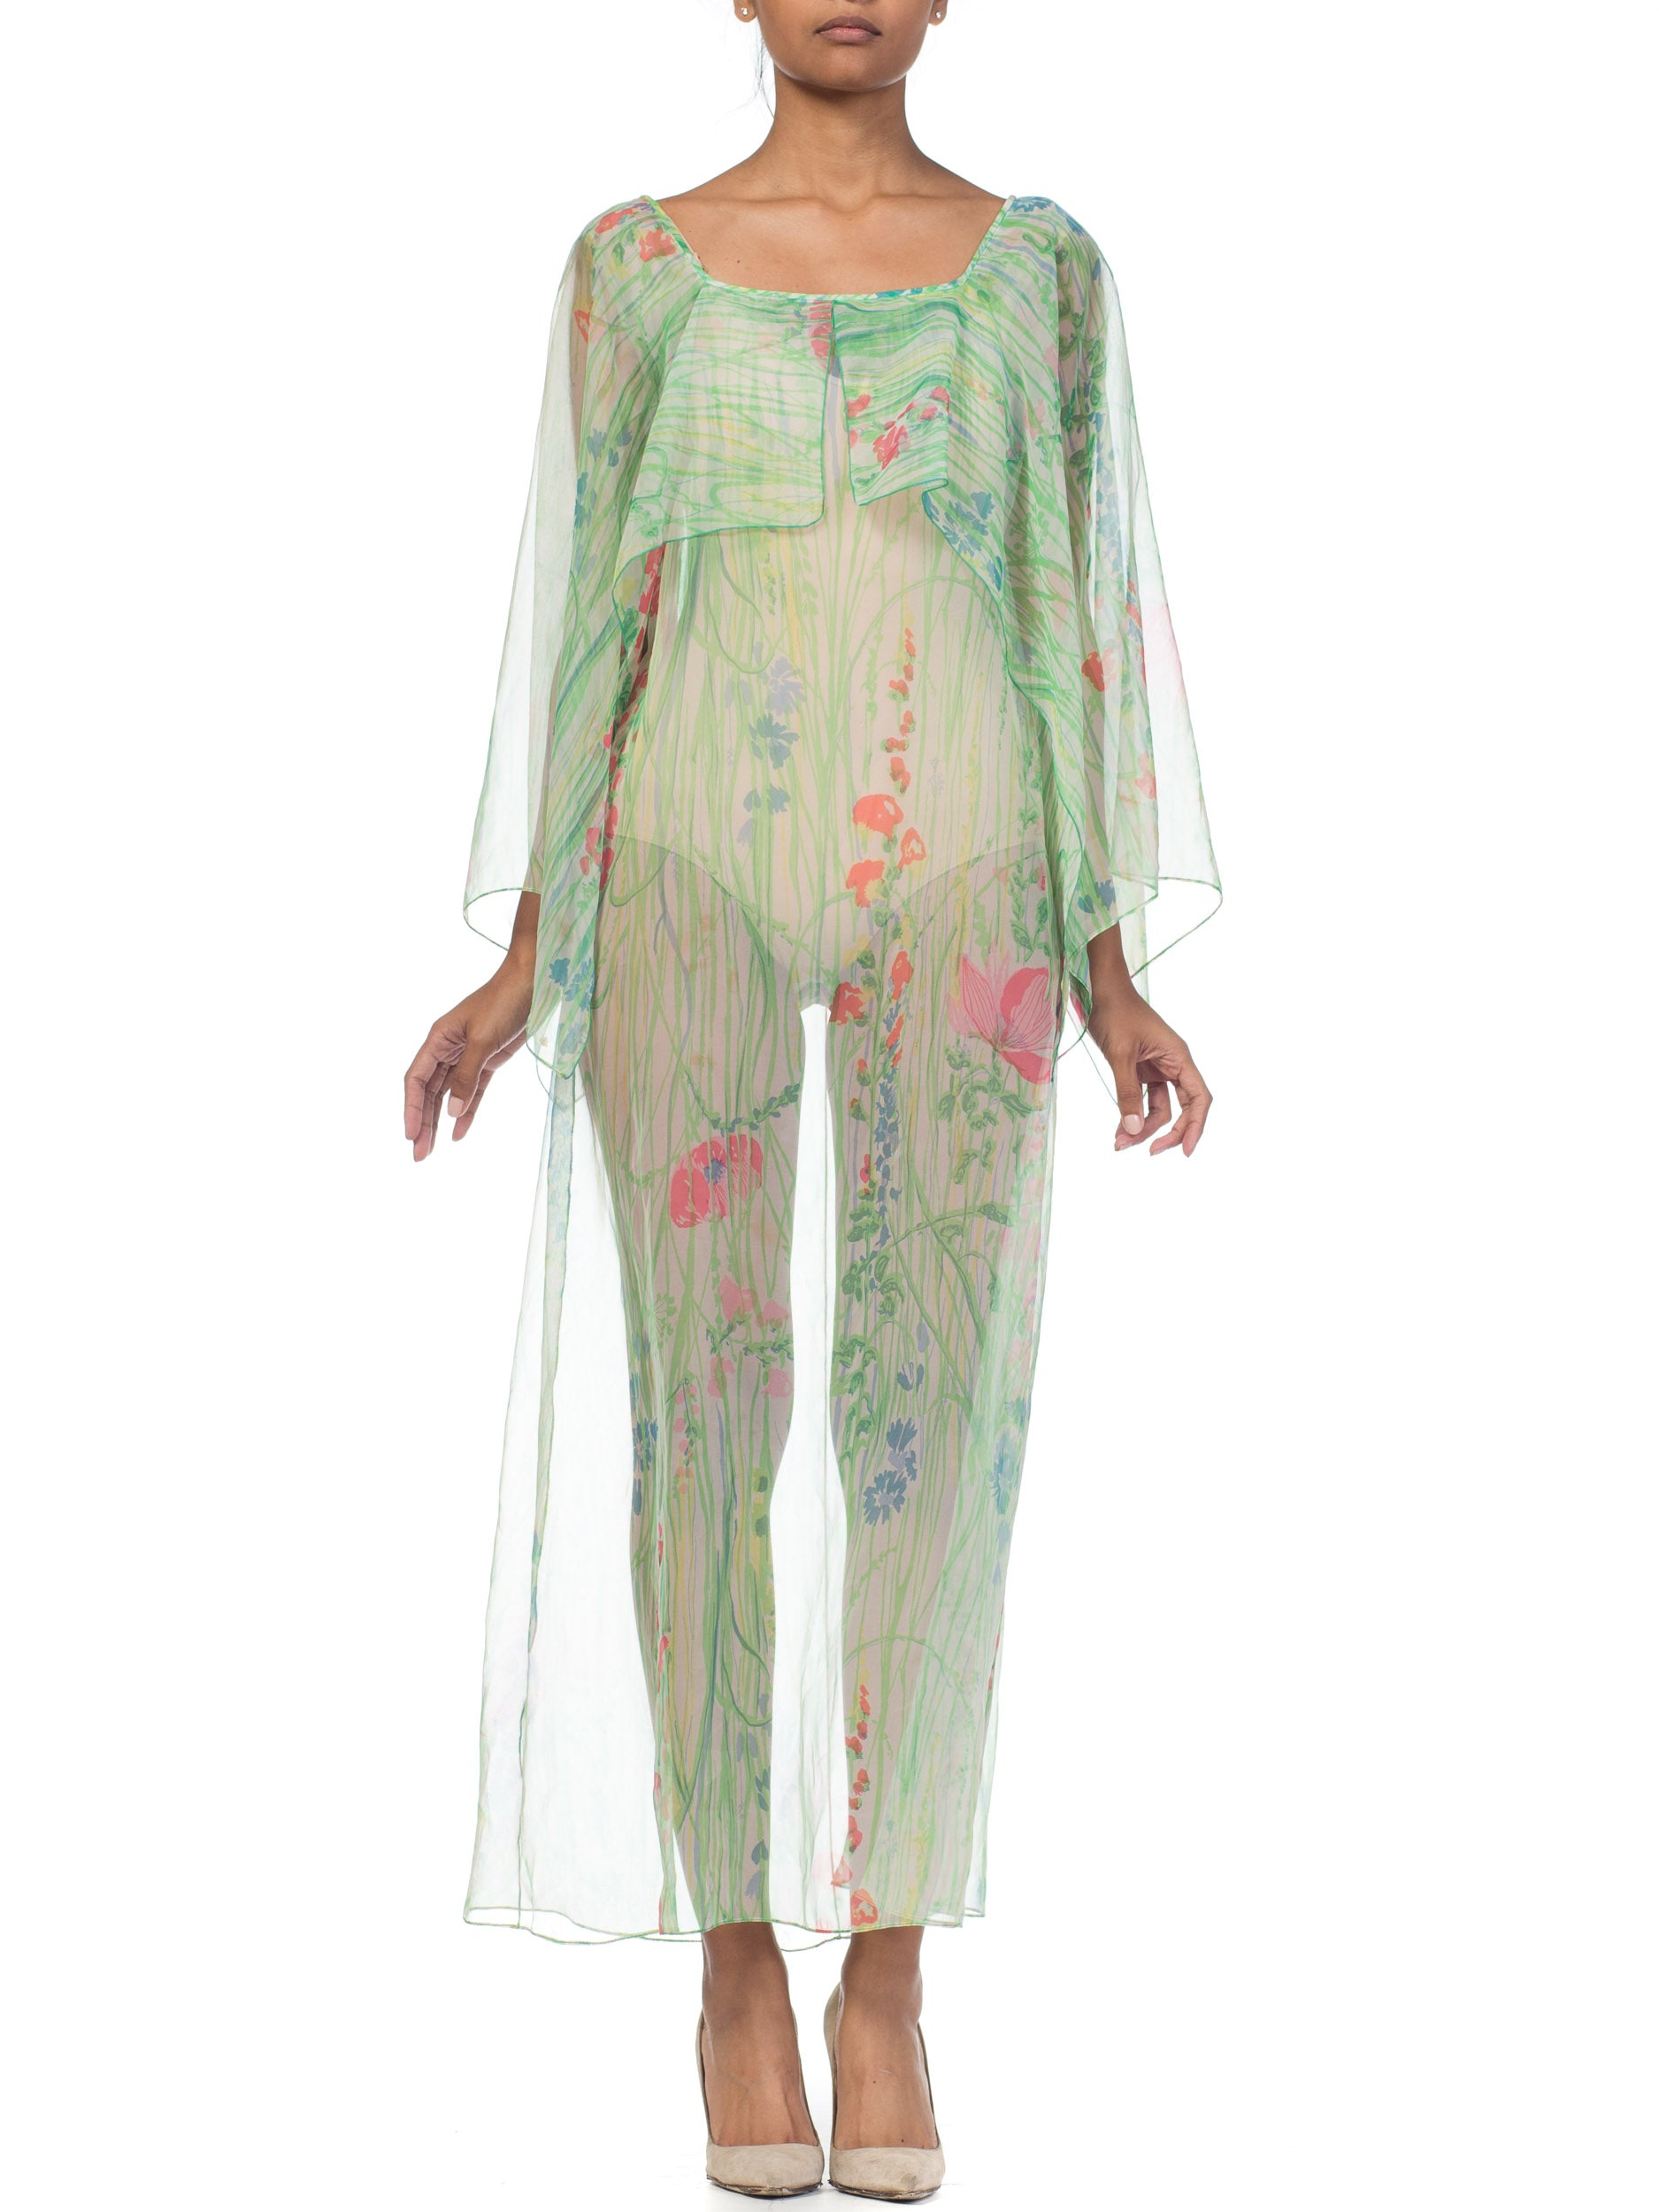 1970s Sheer Floral Chiffon Dress